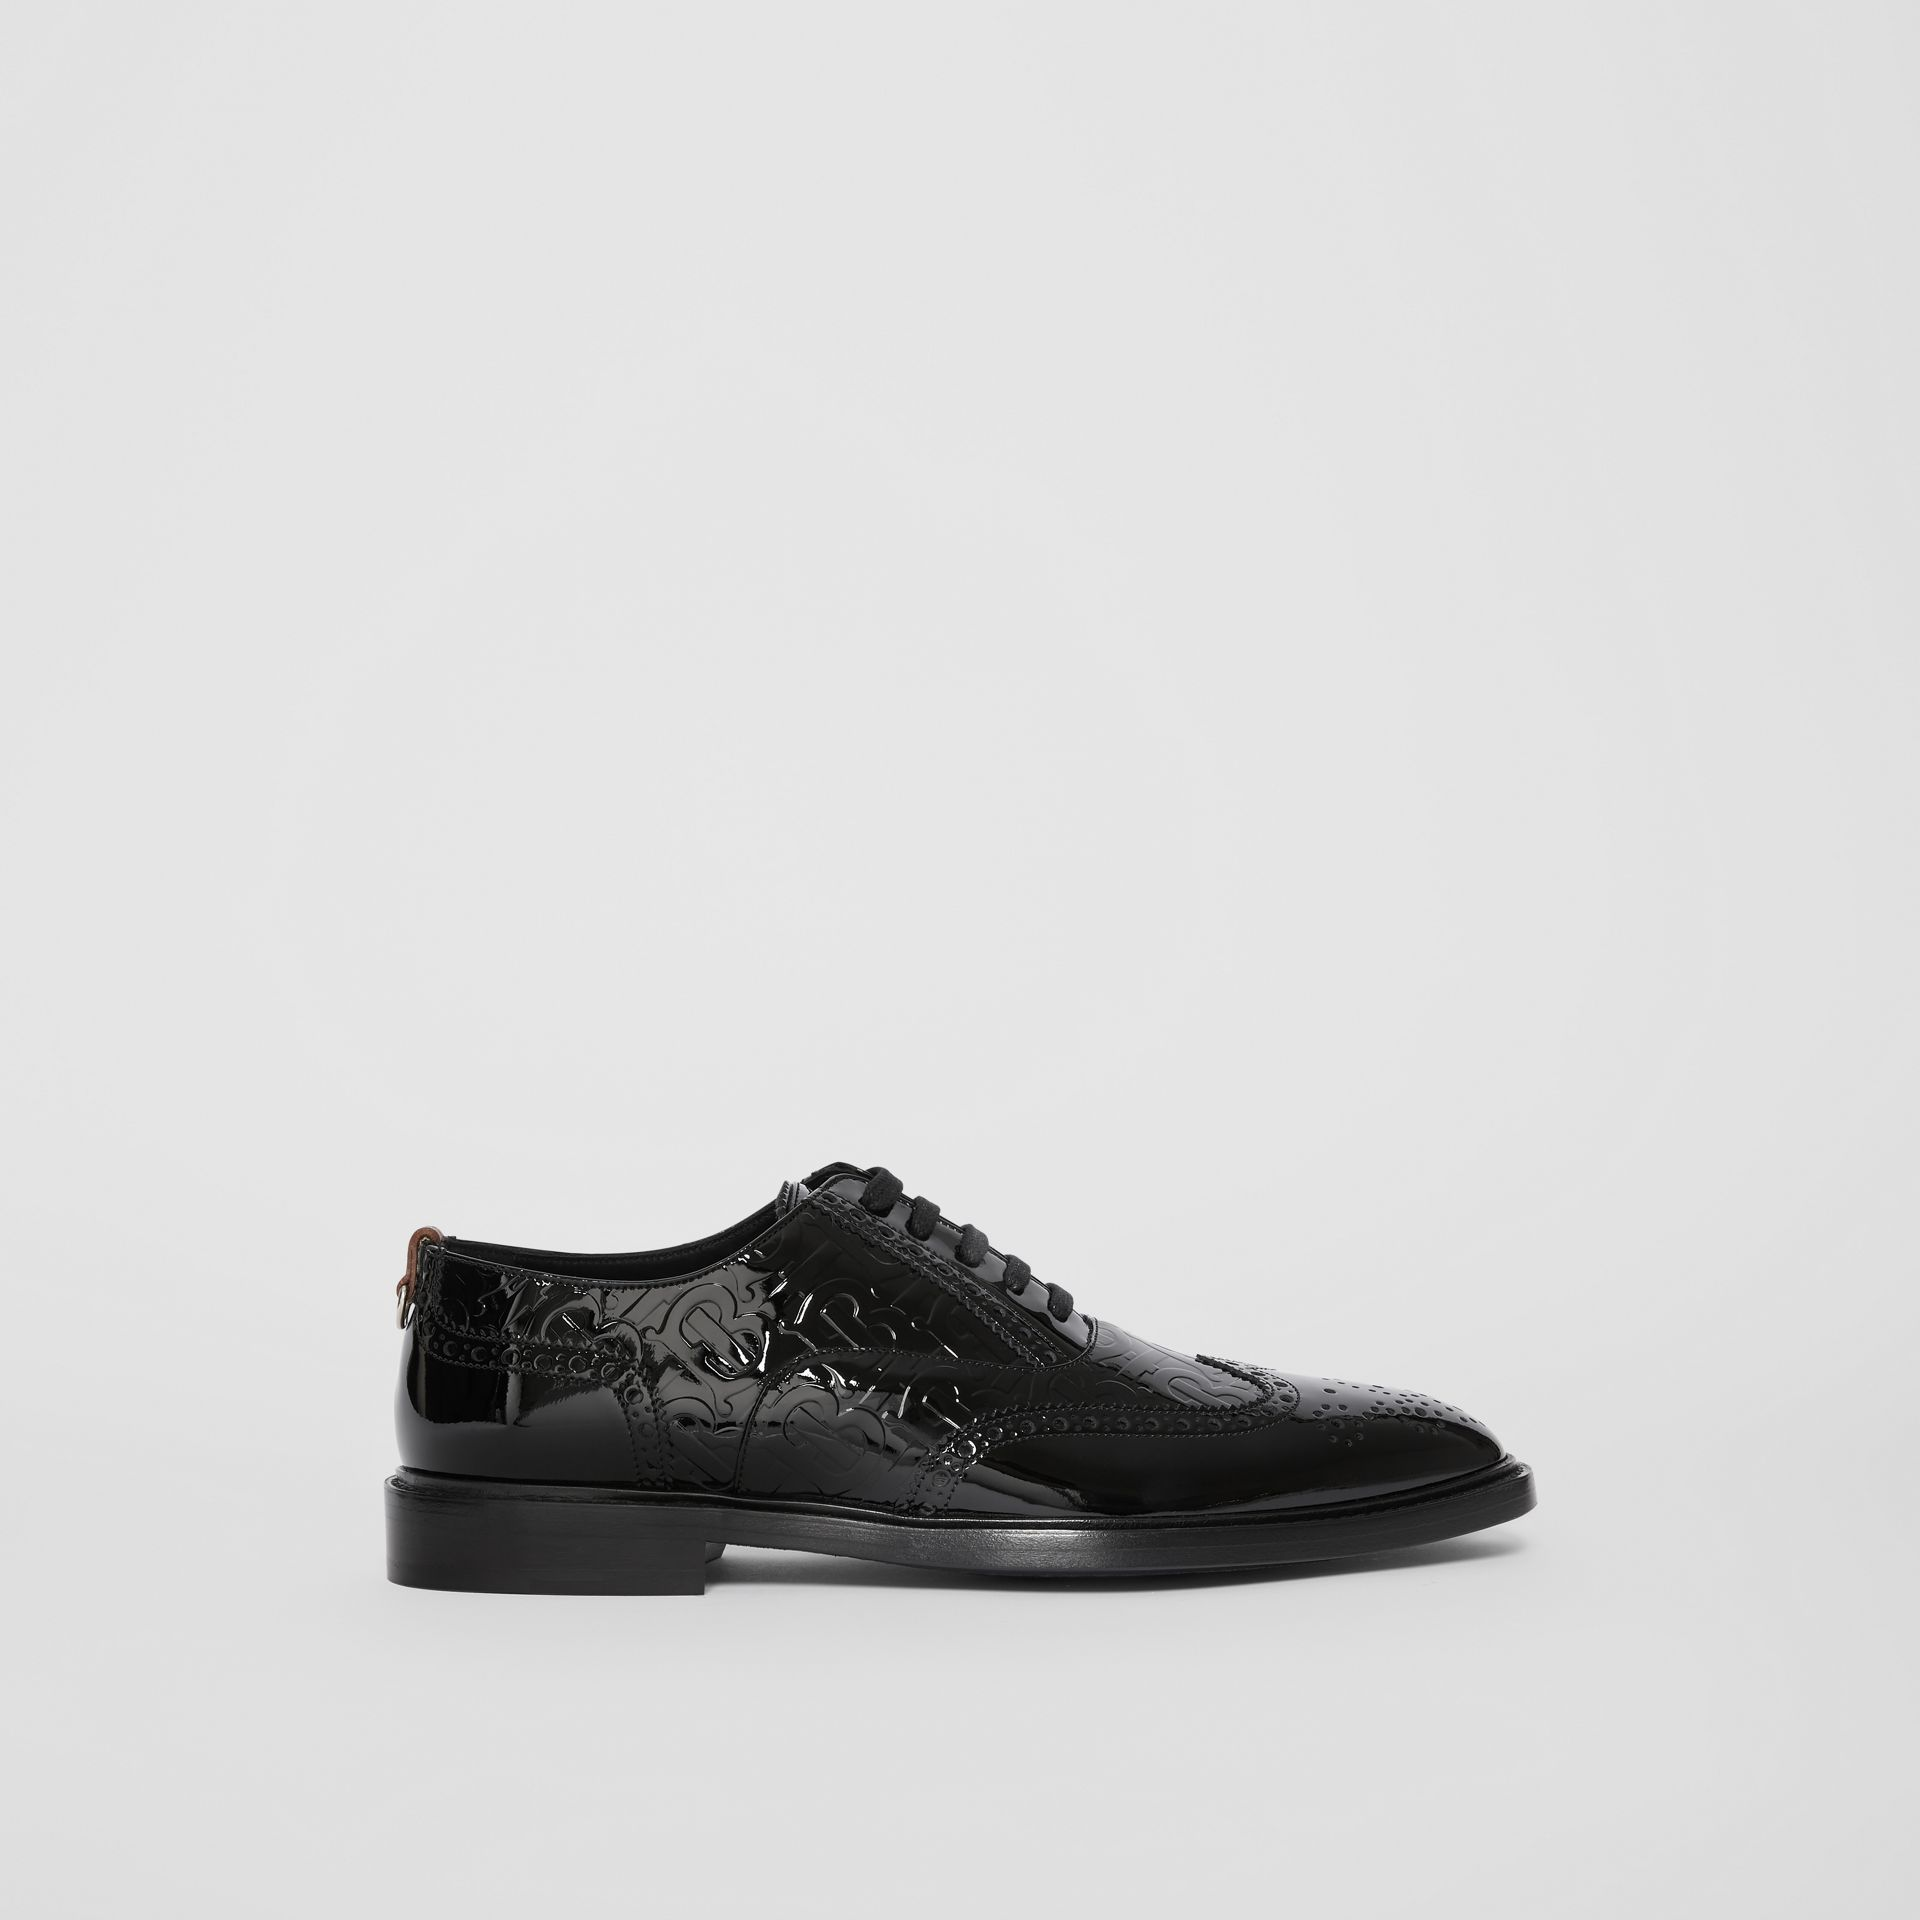 D-ring Detail Monogram Patent Leather Brogues in Black - Men | Burberry Canada - gallery image 5